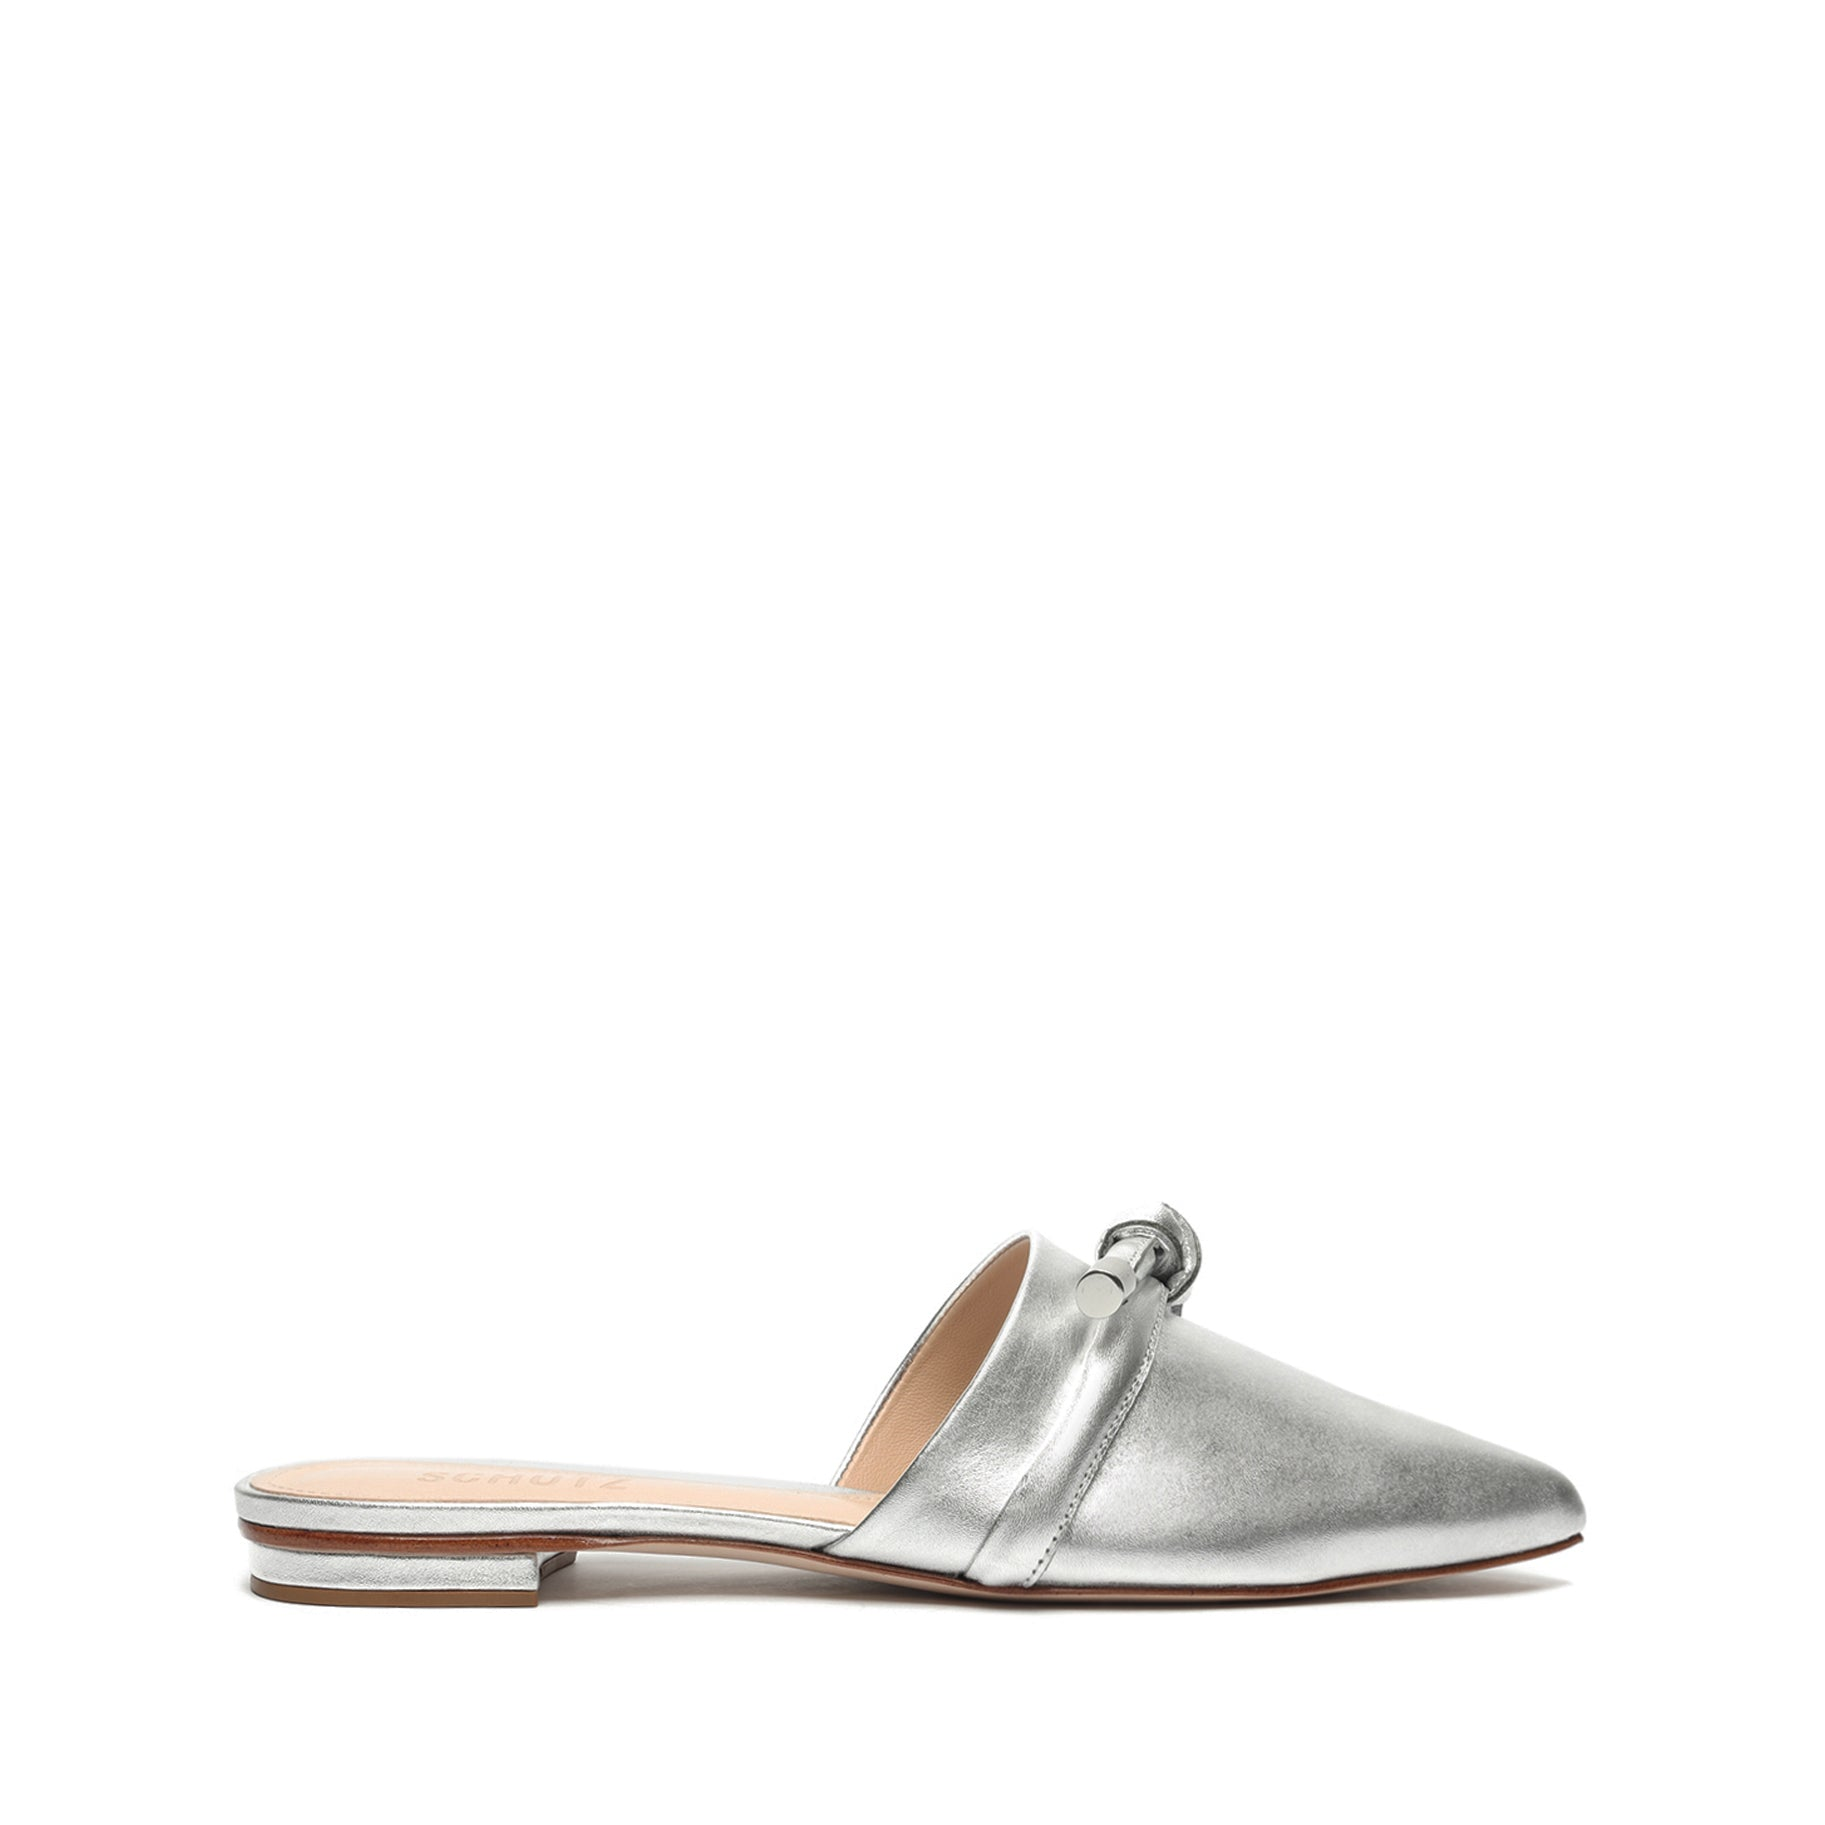 Lay Metallic Leather Mule